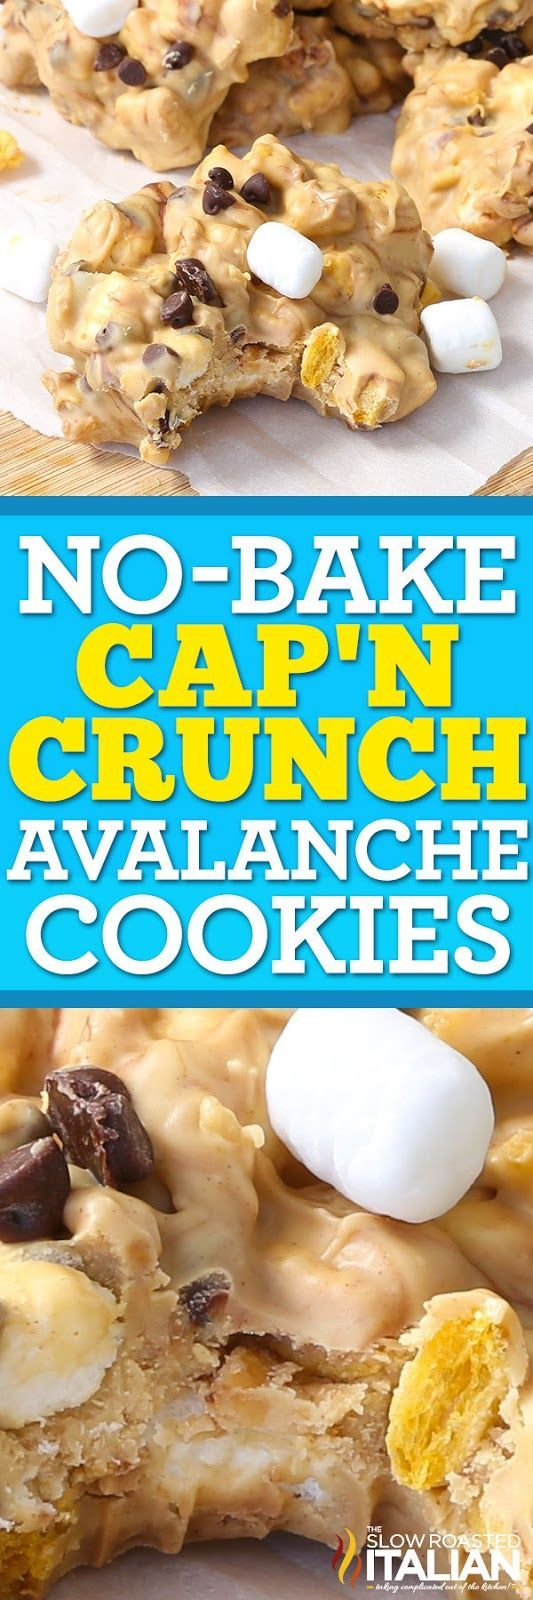 No-Bake Cap'n Crunch Avalanche Cookies are a simple 5-ingredient recipe that comes together in just 15 minutes! Imagine creamy peanut butter fudge swirled with chocolate and speckled with Cap'n Crunch cereal and fluffy marshmallows. It's the ultimate treat. A creamy, fudgy, crunchy, peanut buttery treat that has the right touch of chocolate and is perfectly sweet! Hurry, you probably have everything you need to make this in your pantry!